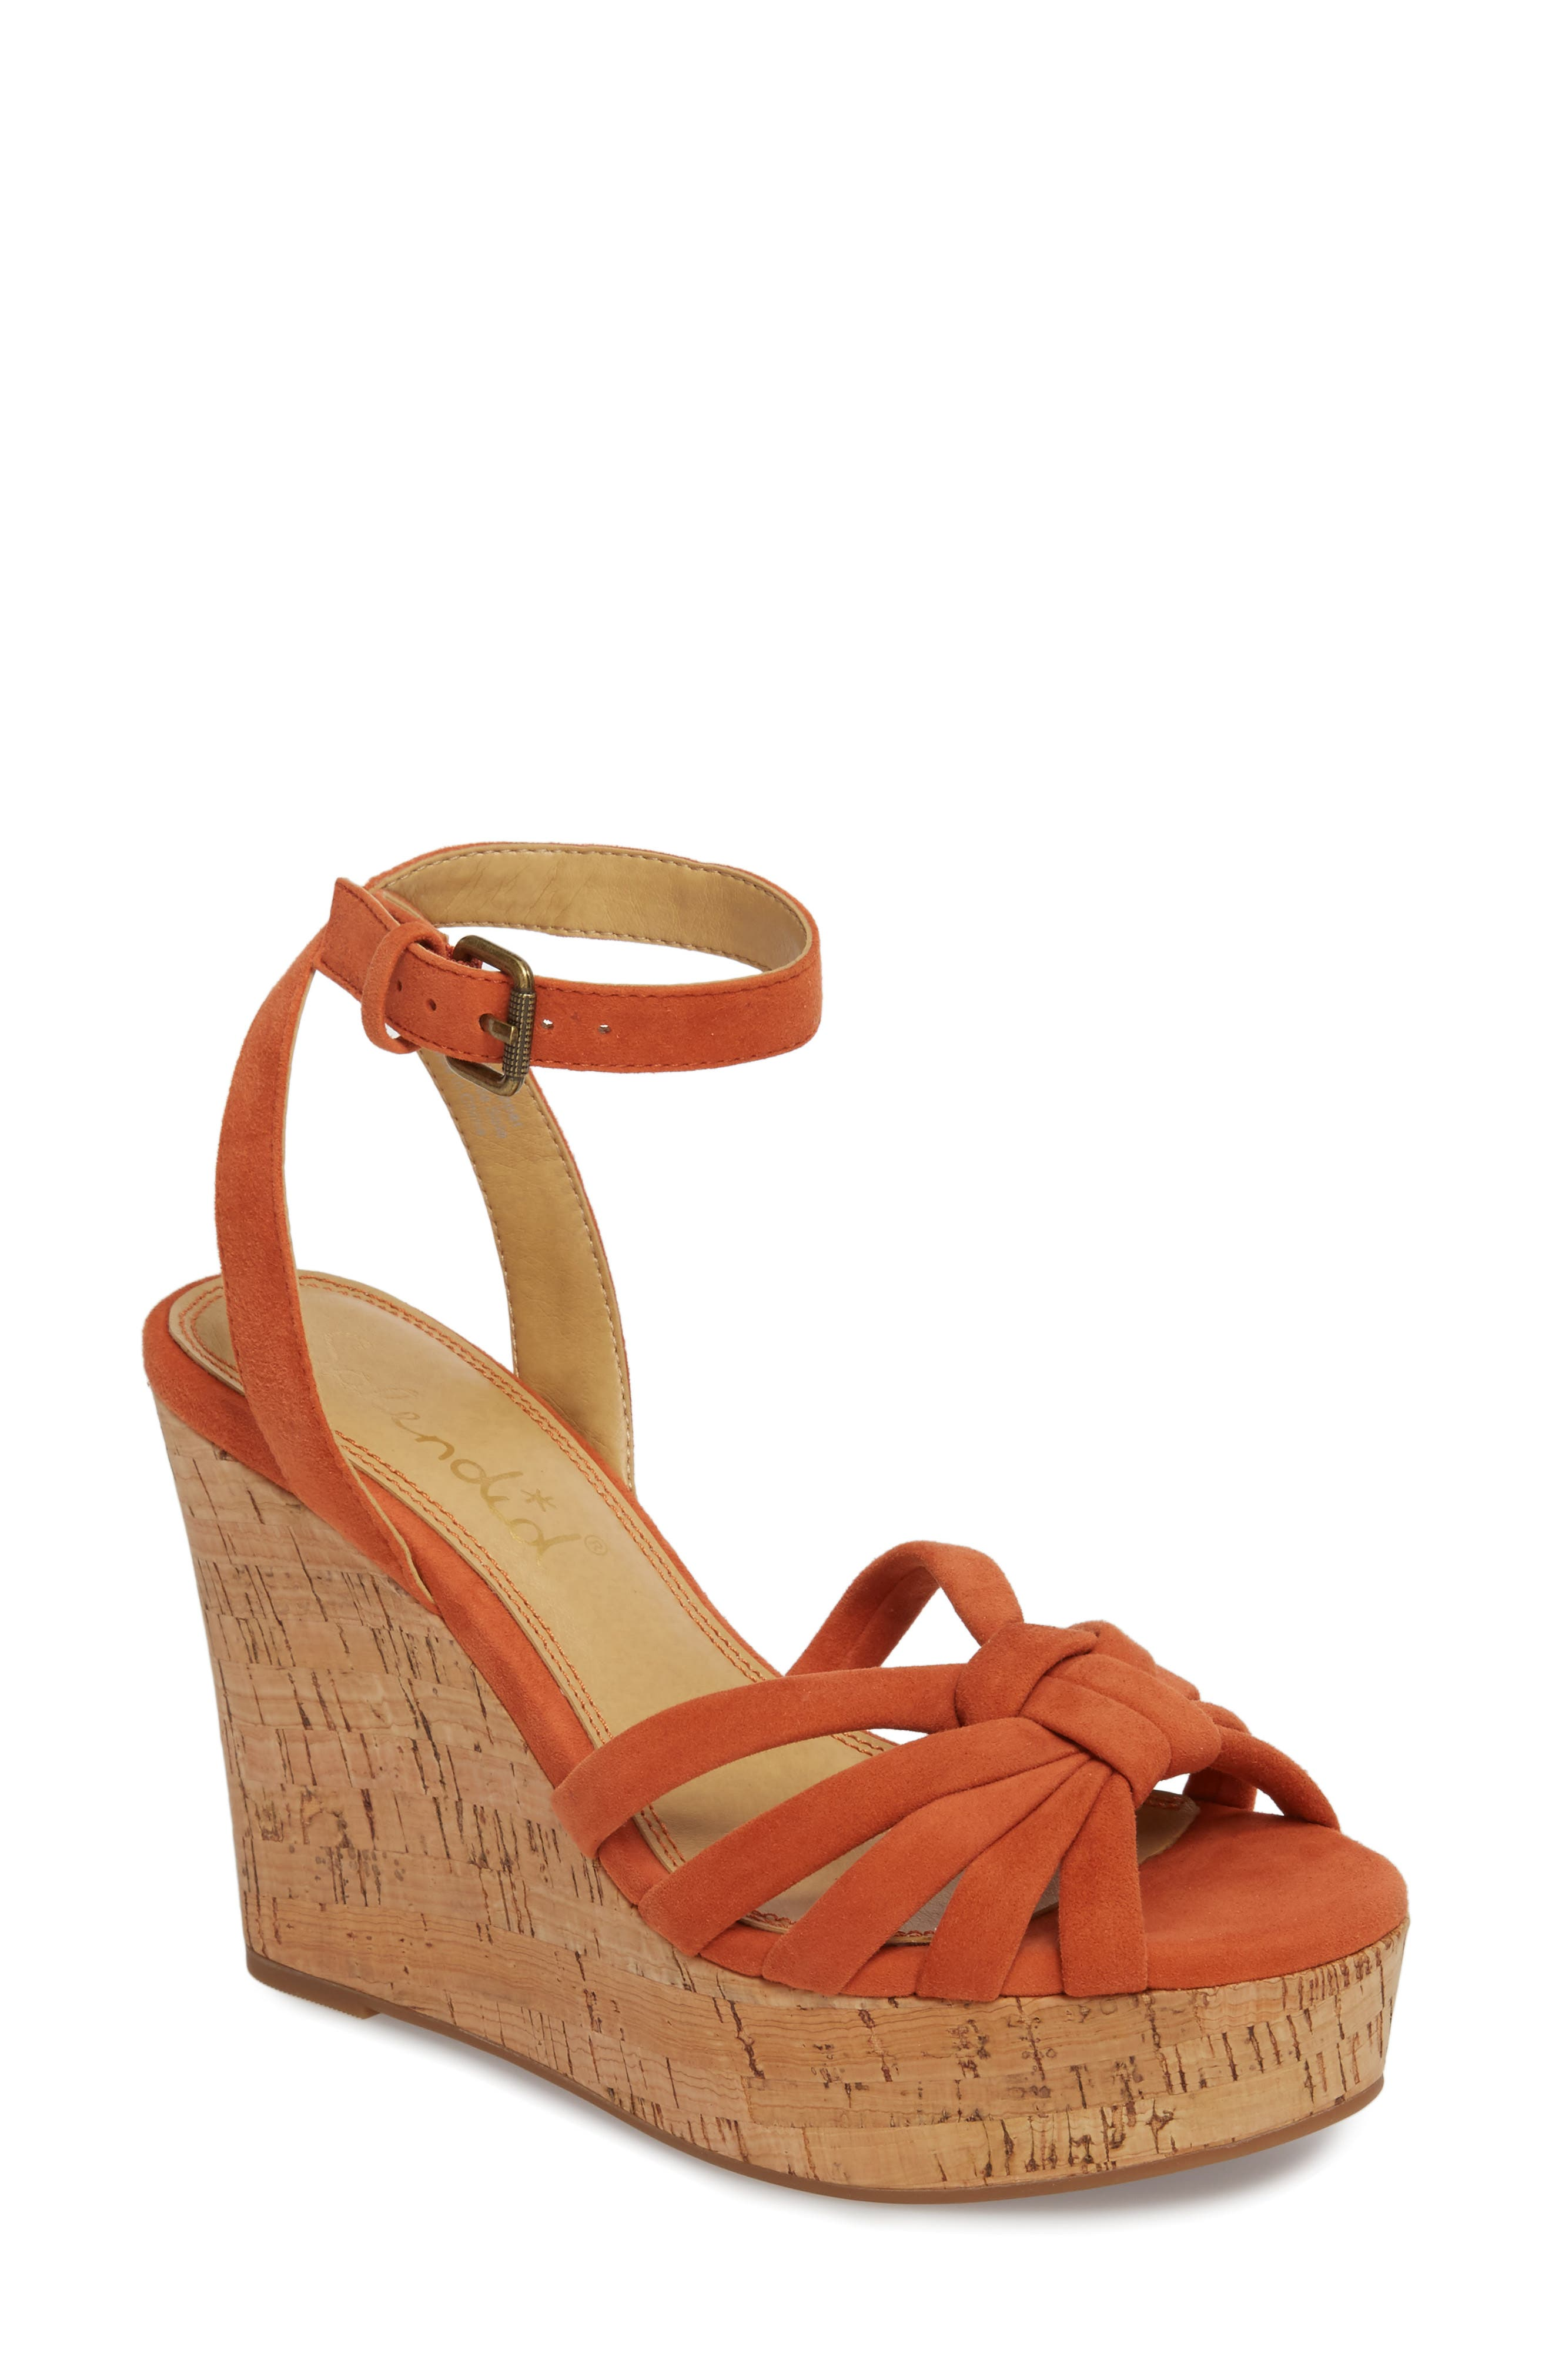 Fallon Wedge Sandal,                             Main thumbnail 1, color,                             Coral Suede